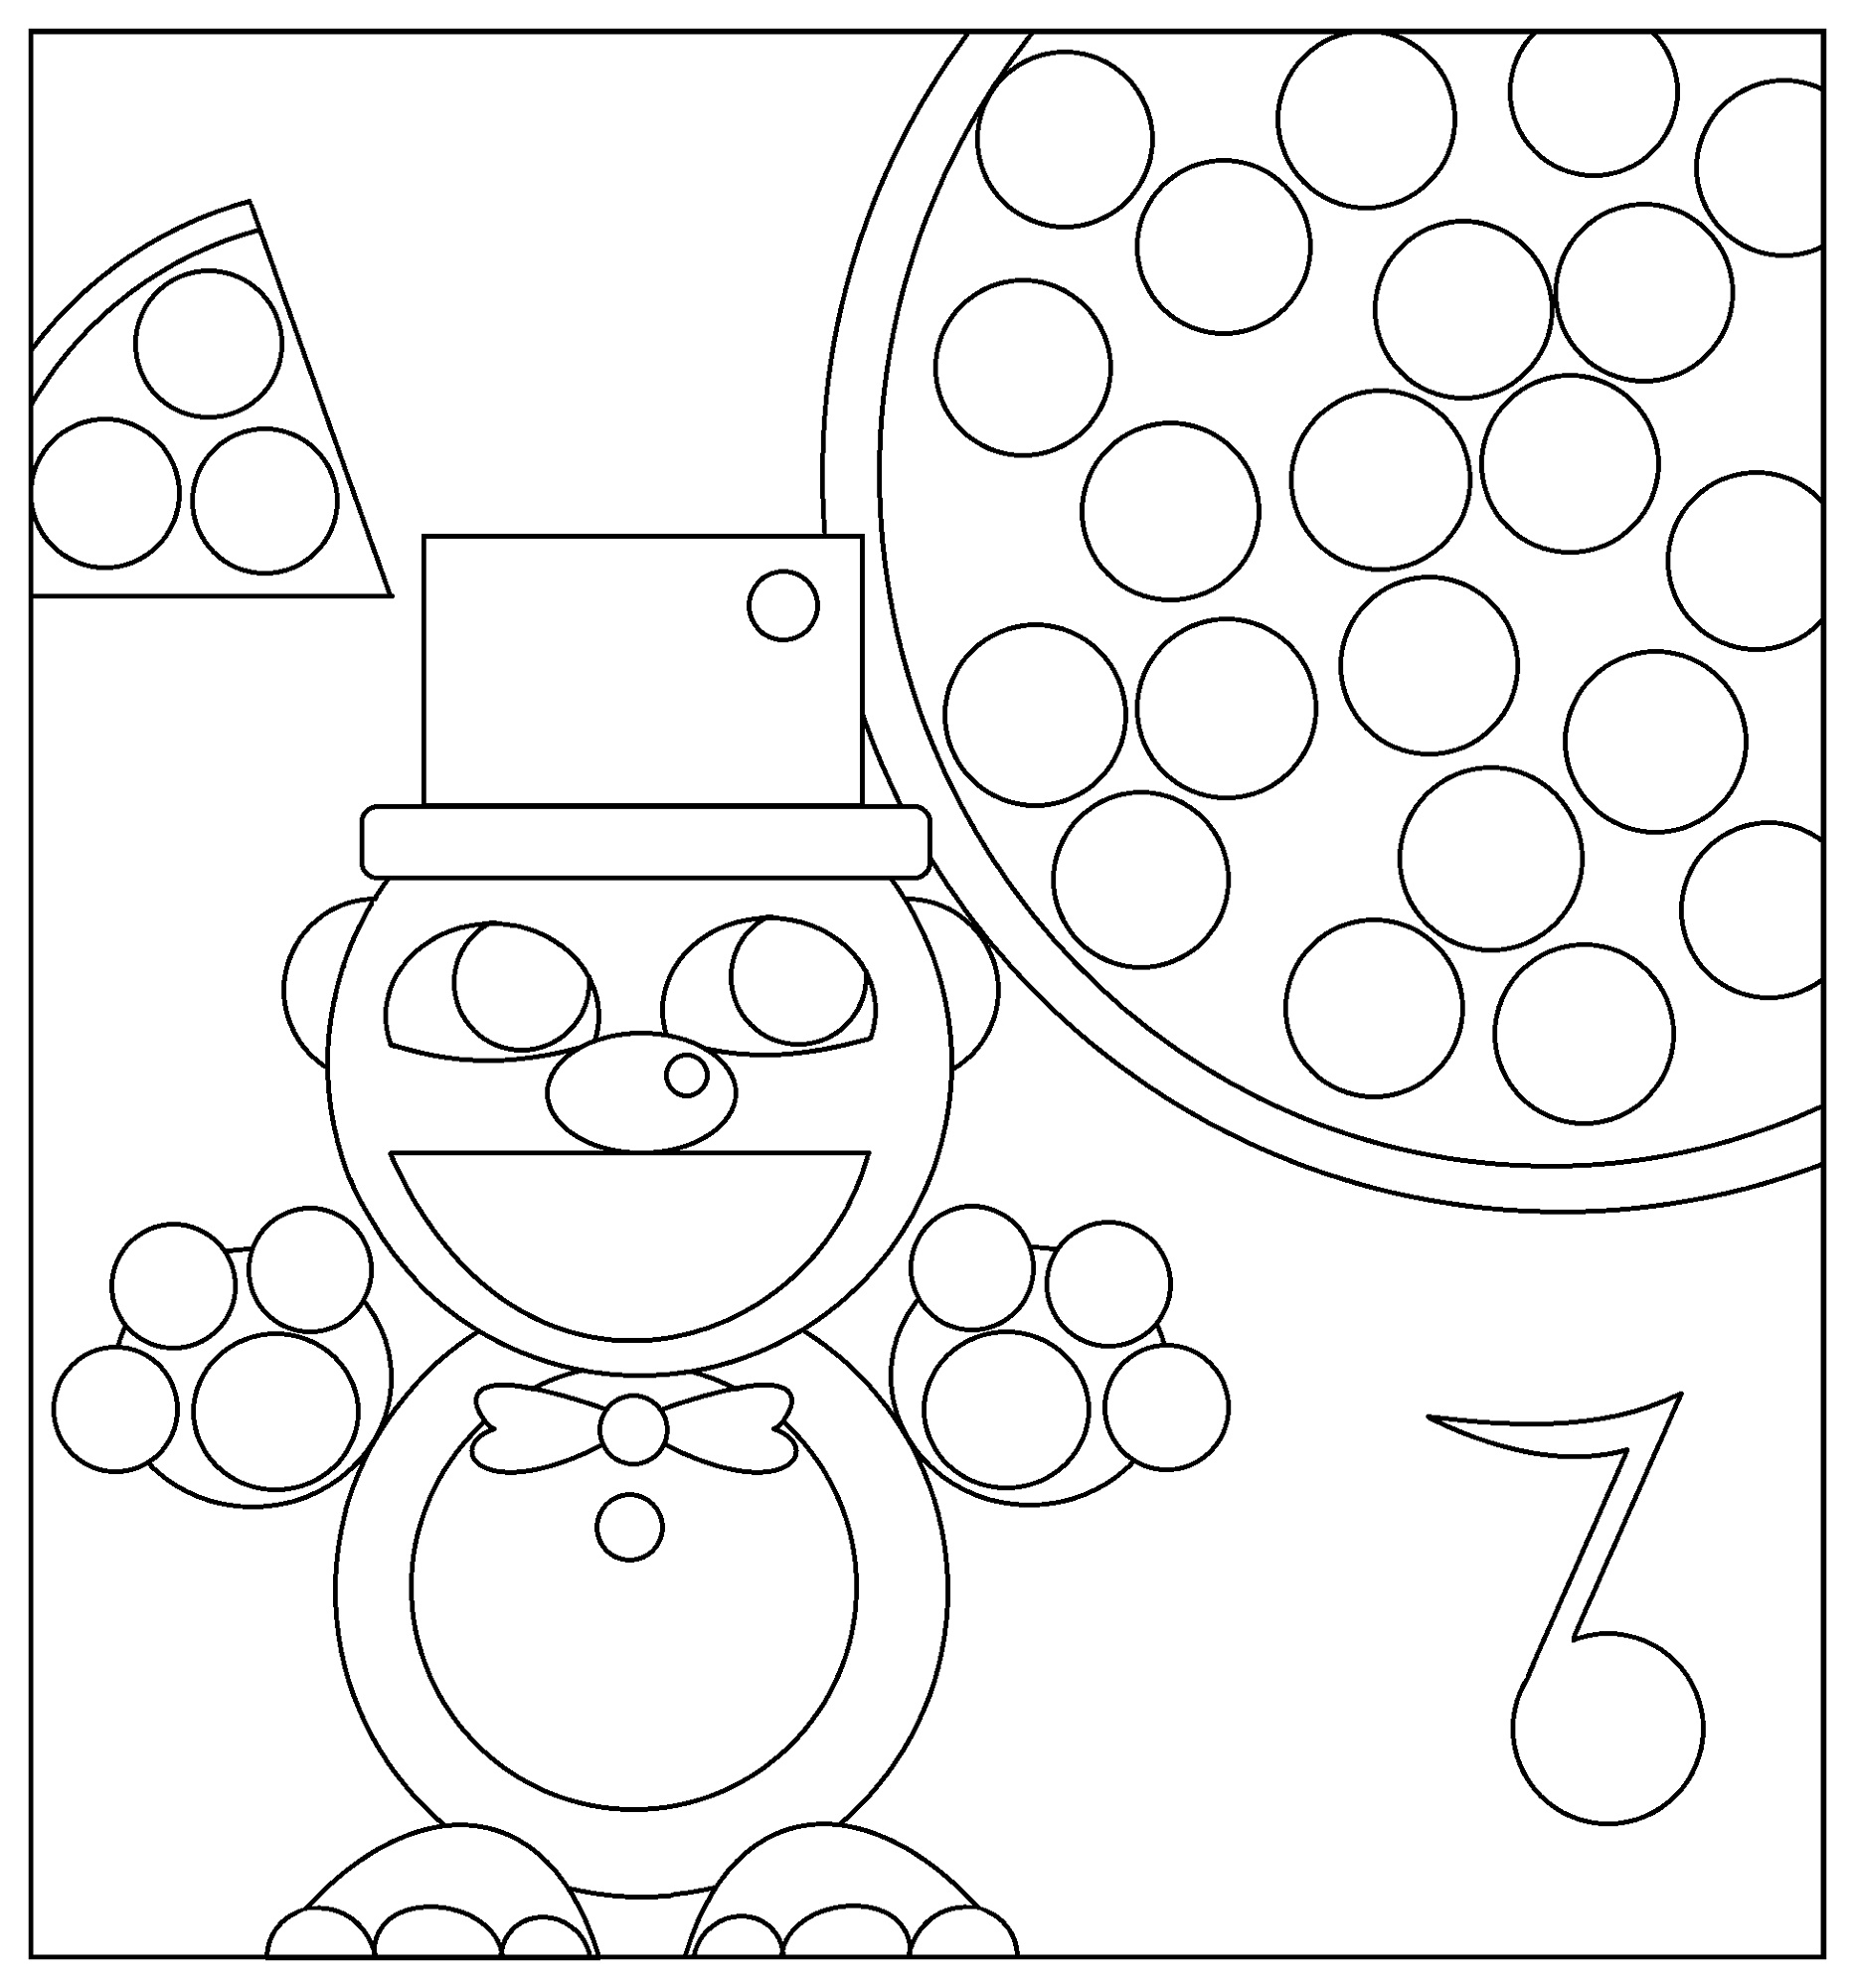 Freddy-Fazbear-Coloring-Page-Printable